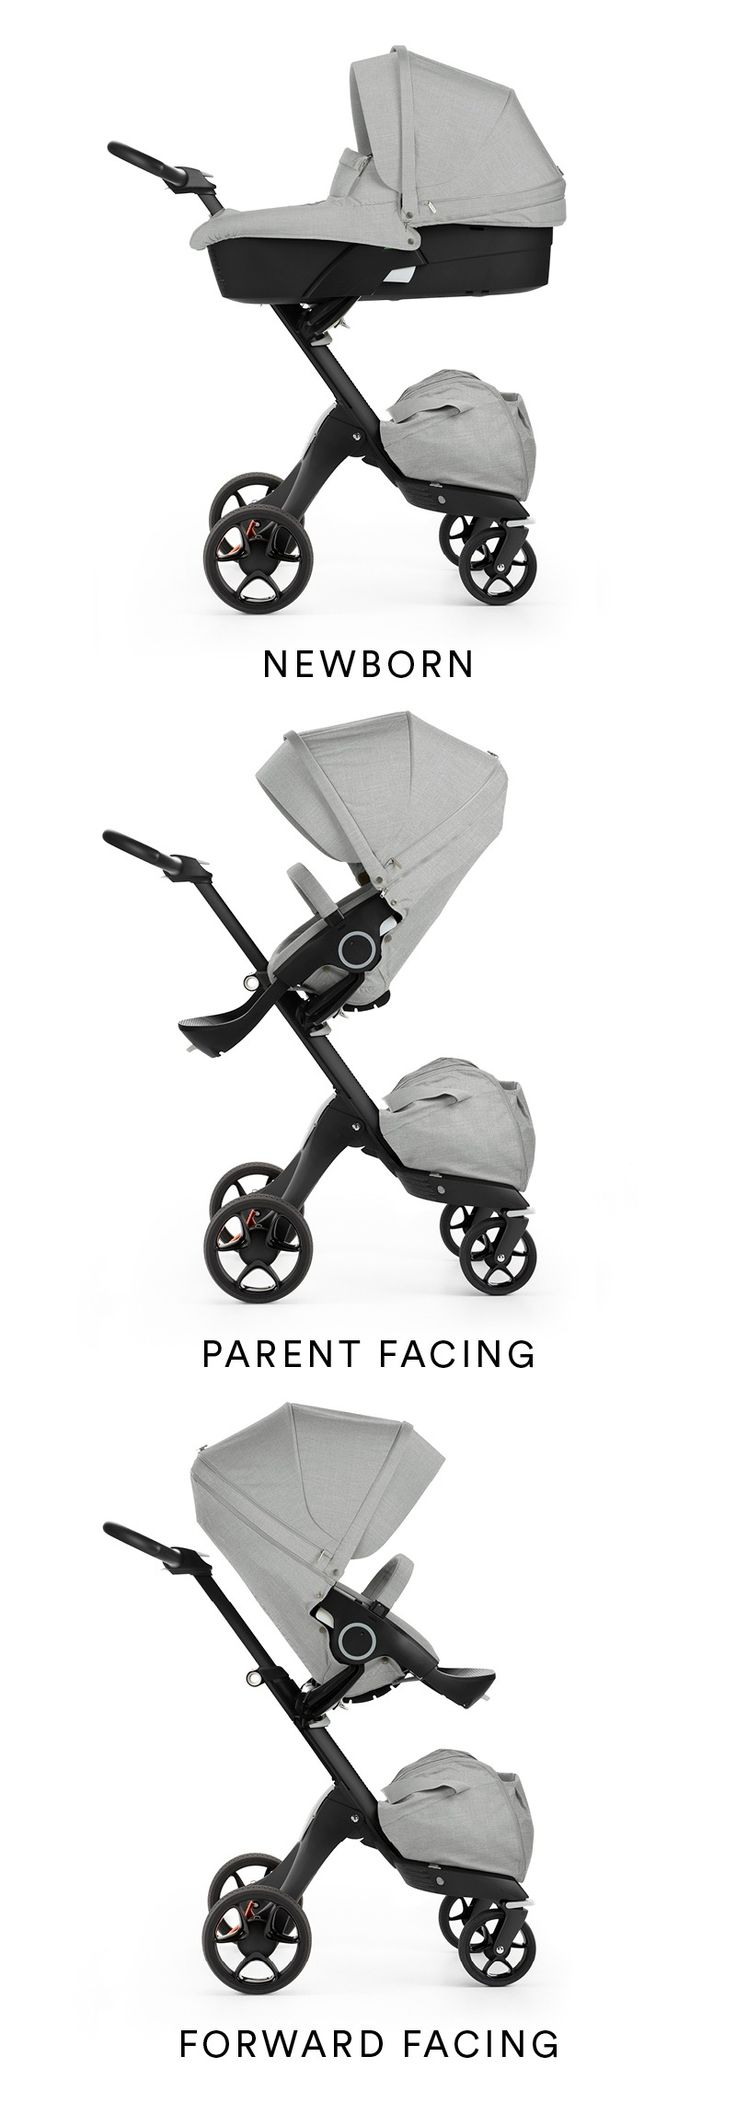 Stokke® Xplory® introduces the all Black Chassis stroller. Front or rear facing with a five point safety harness, adjustable footrest and handle, Stokke® Xplory® provides an almost endless choice of seating positions to adapt to you and your baby's ever-changing needs.